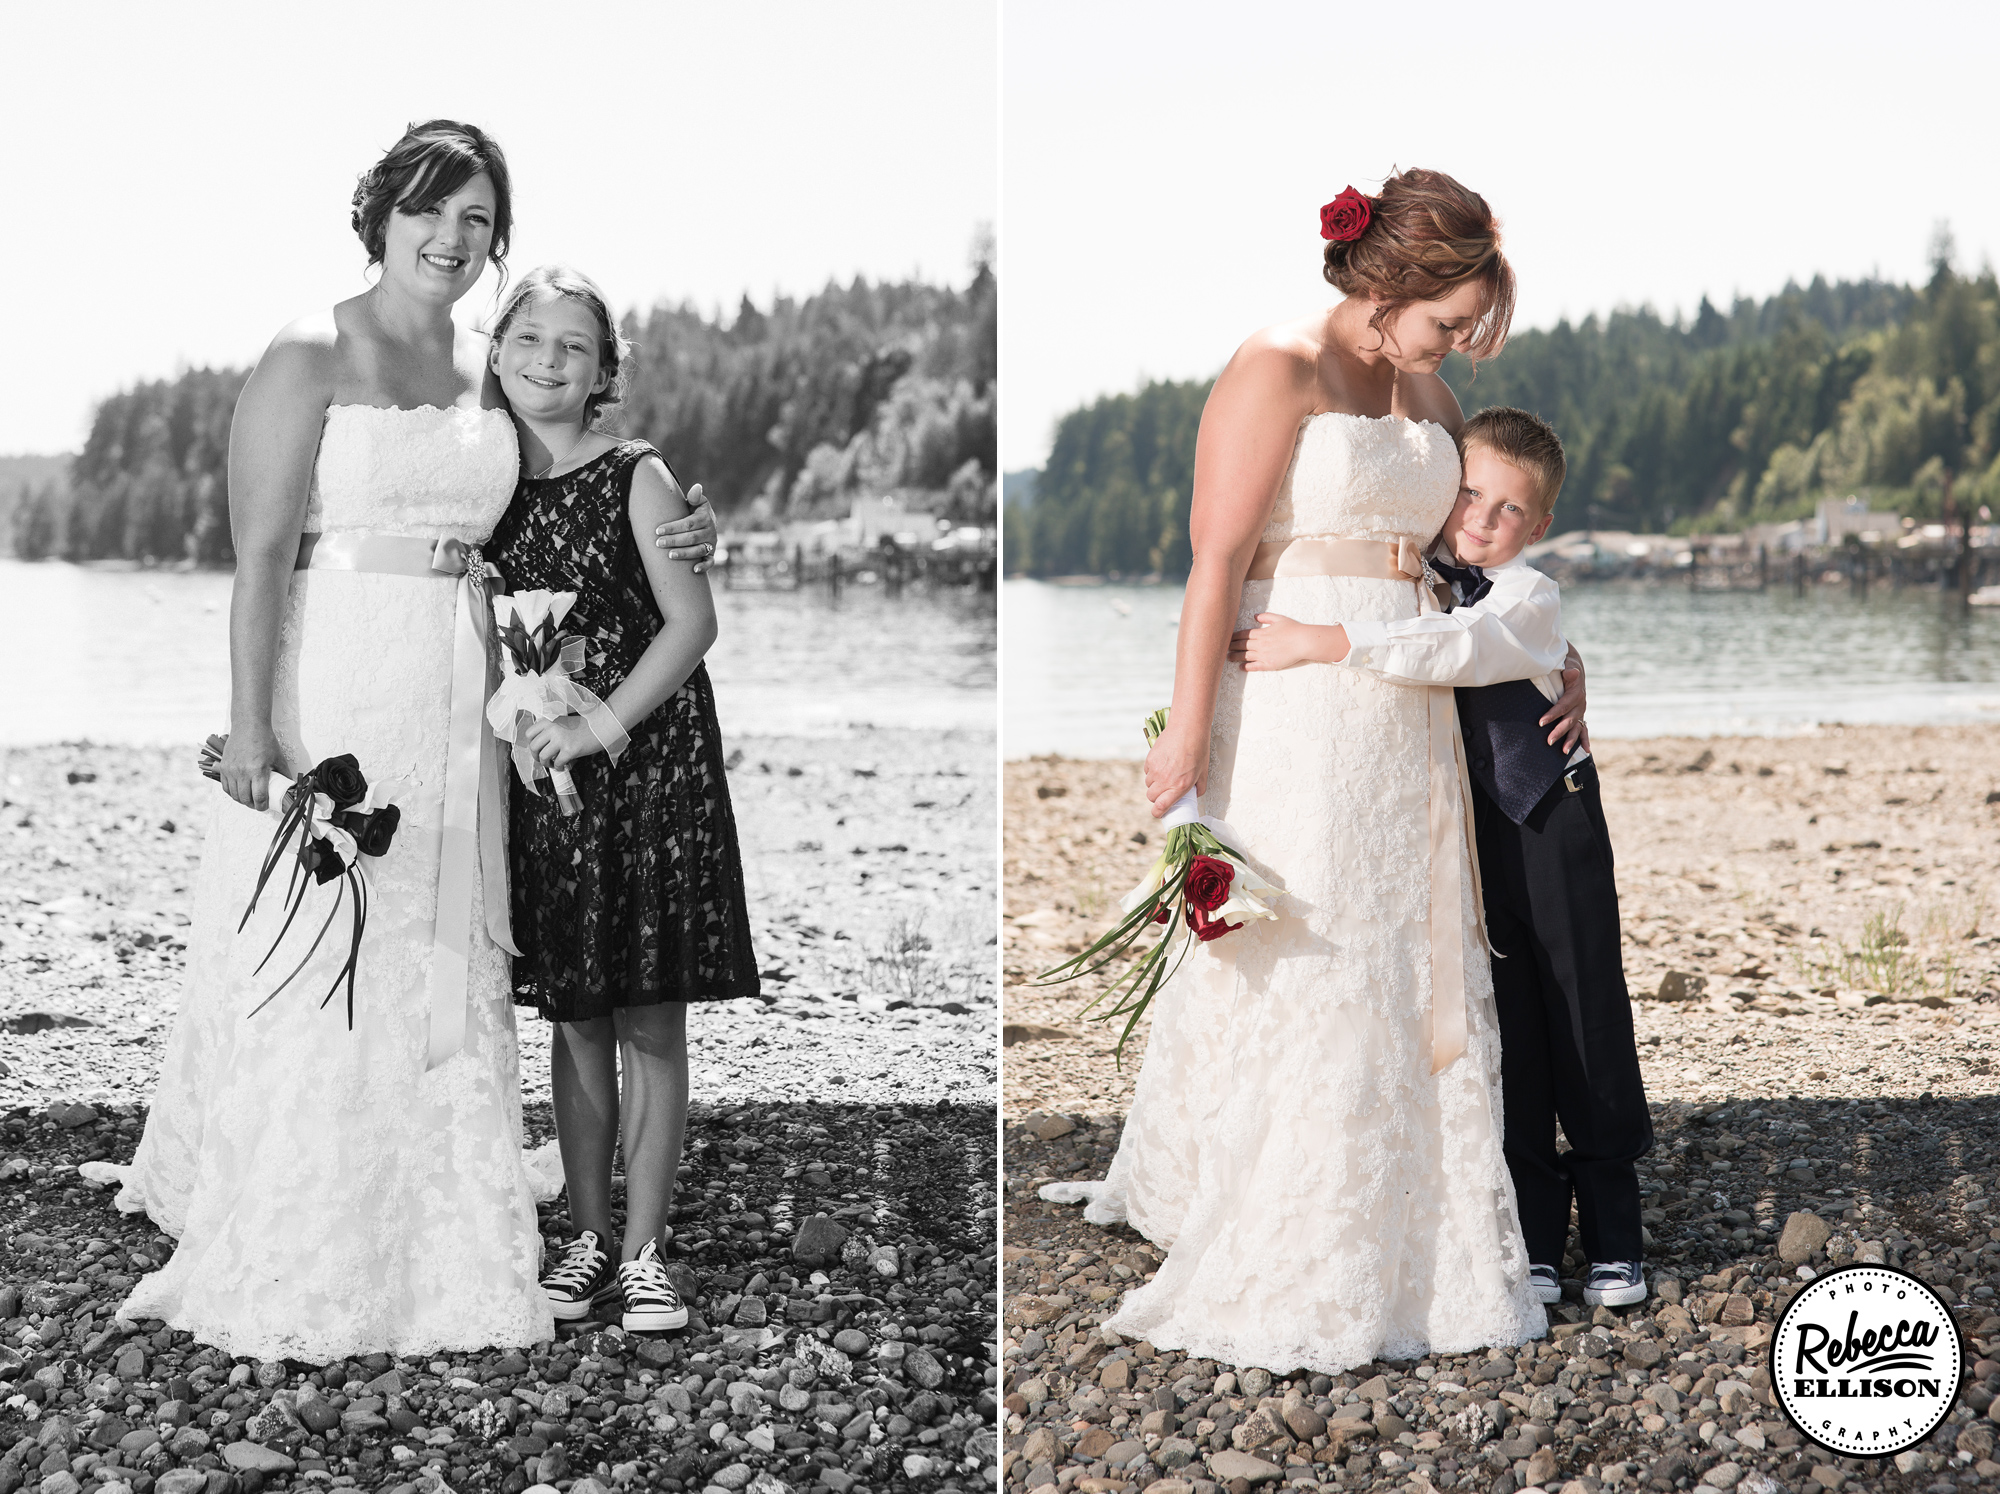 Bride on the beach with her ringbearer and flower girl at a beachfront wedding photographed by Seattle wedding photographer Rebecca Ellison featuring a white belted wedding dress and navy blue accents